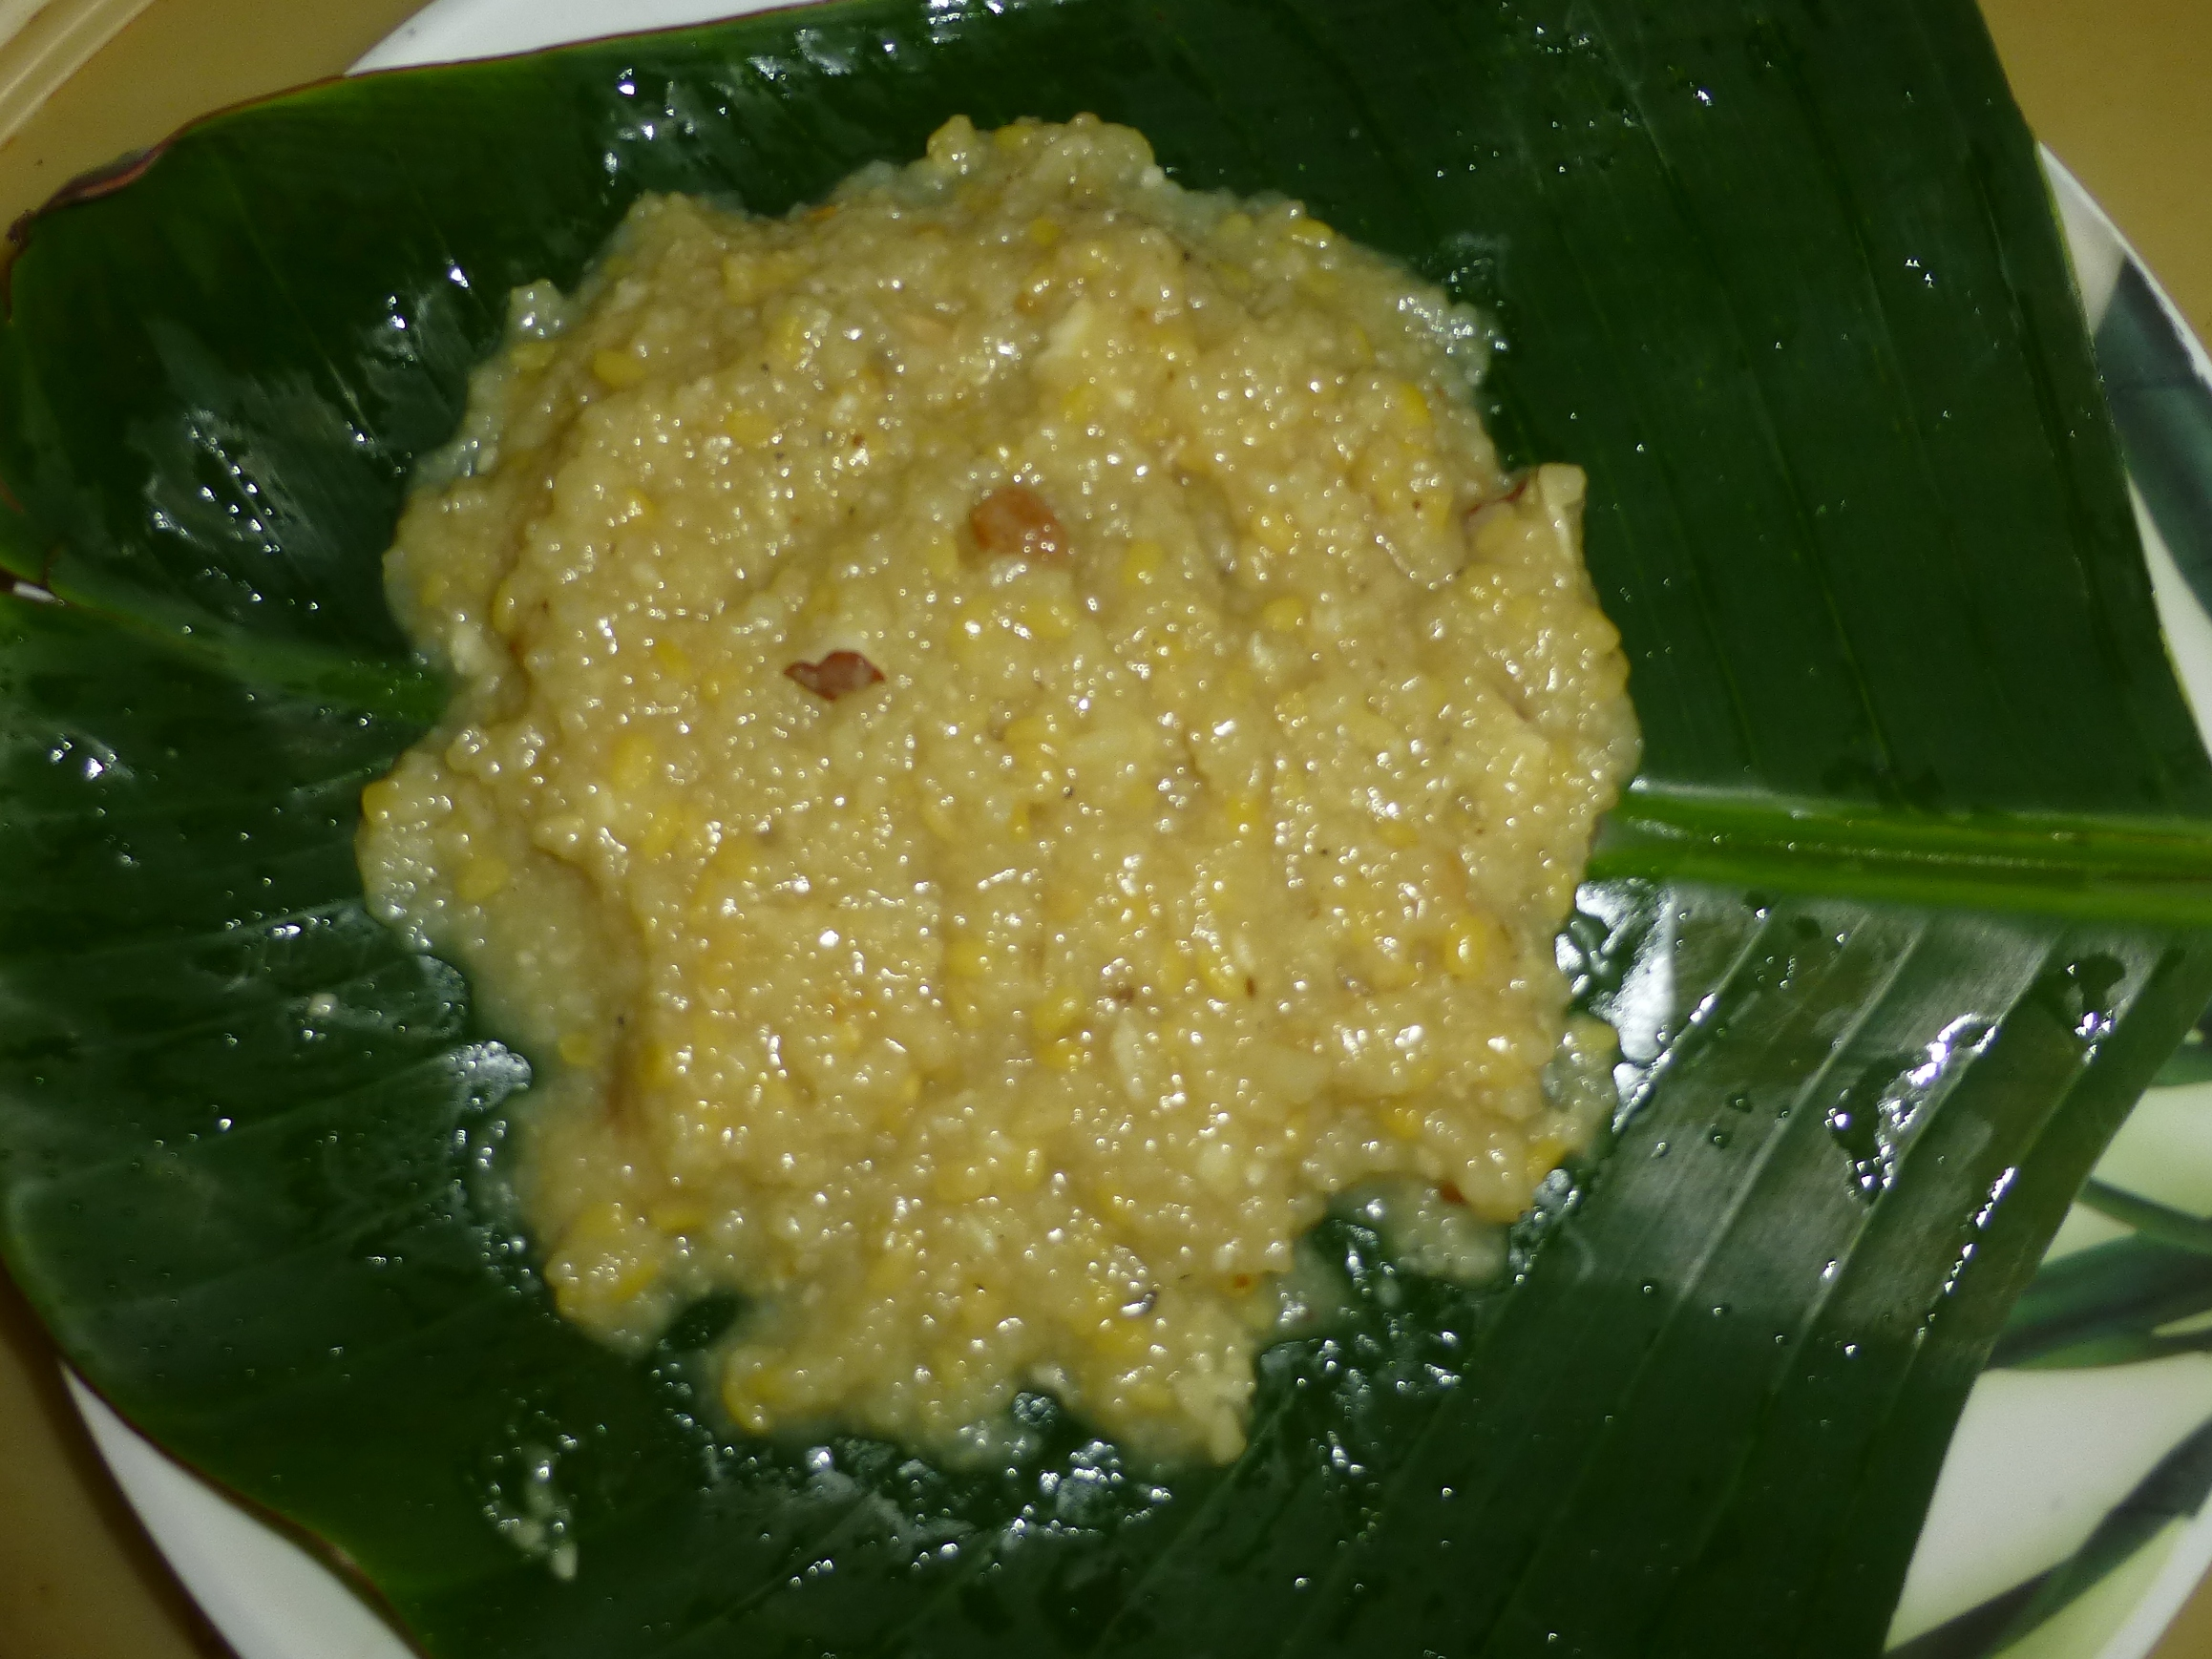 Picture of Pongal : a Sweet Dish Cooked During the Festival of Pongal